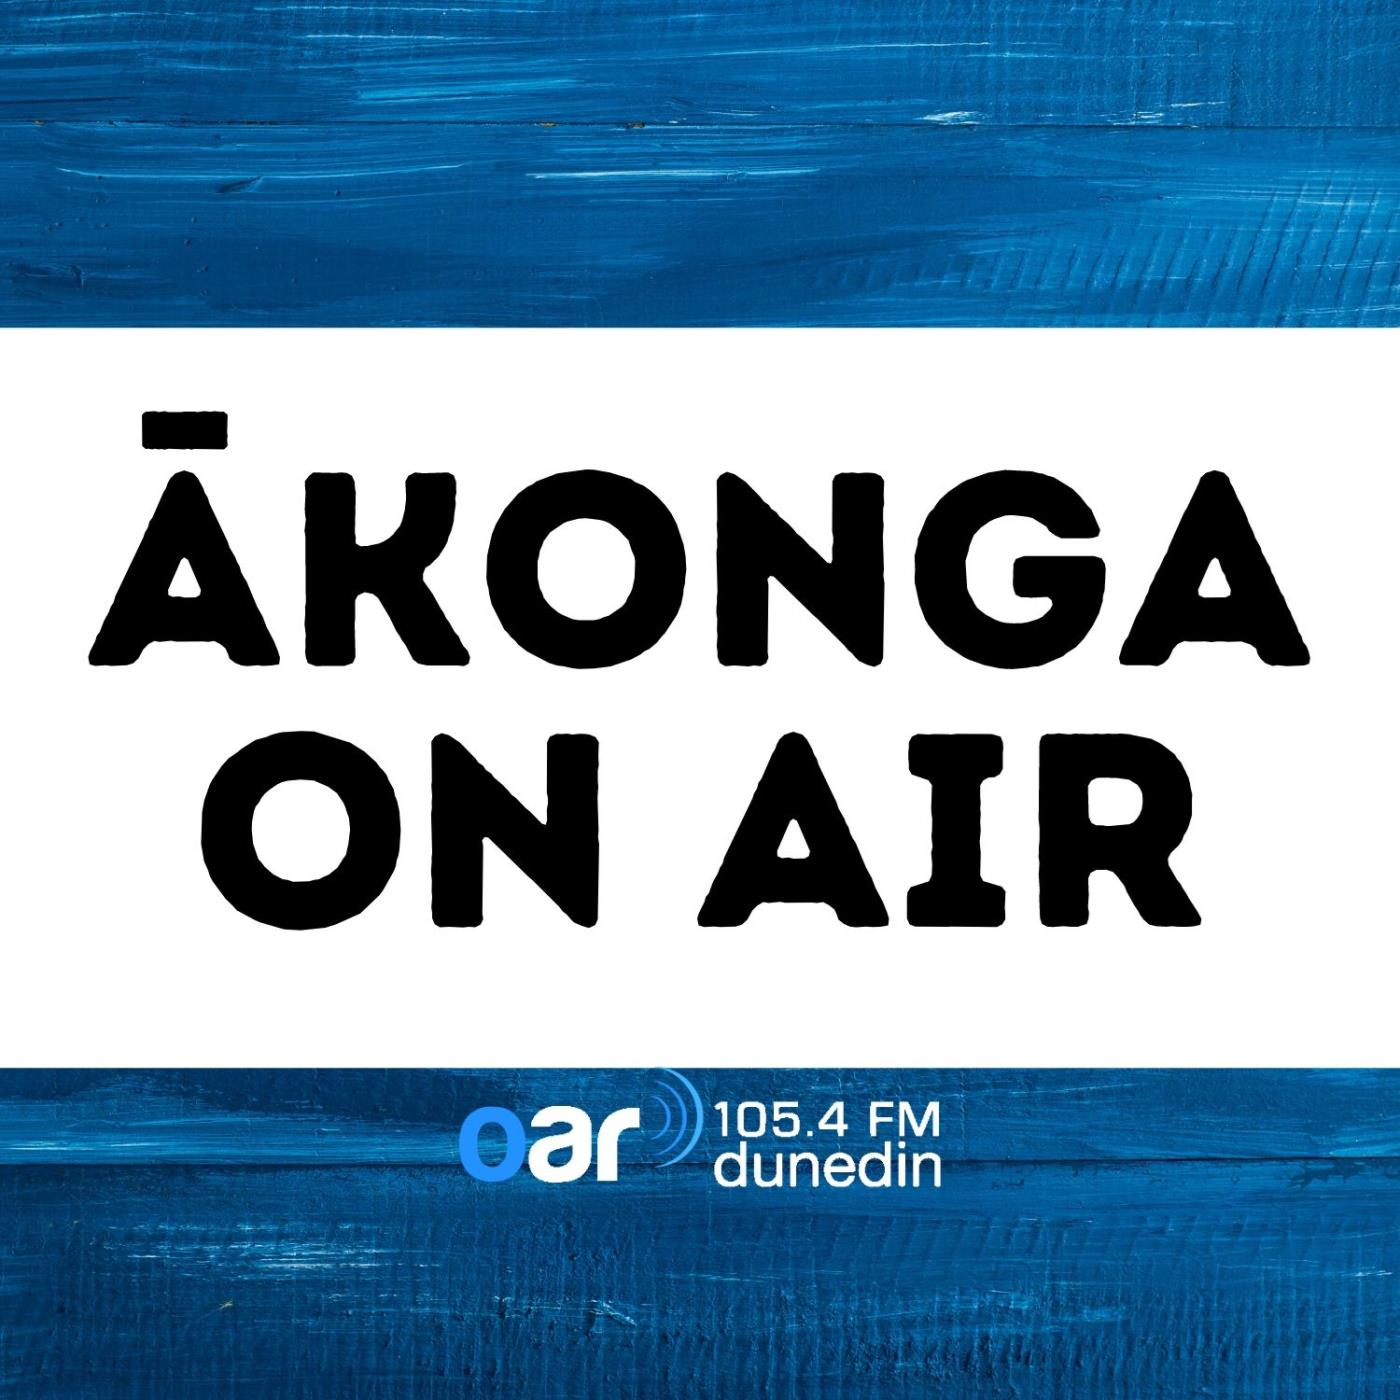 Ākonga on Air - 23-10-2020 - Opoho Discovery - Girls 4 Greatness Student Show